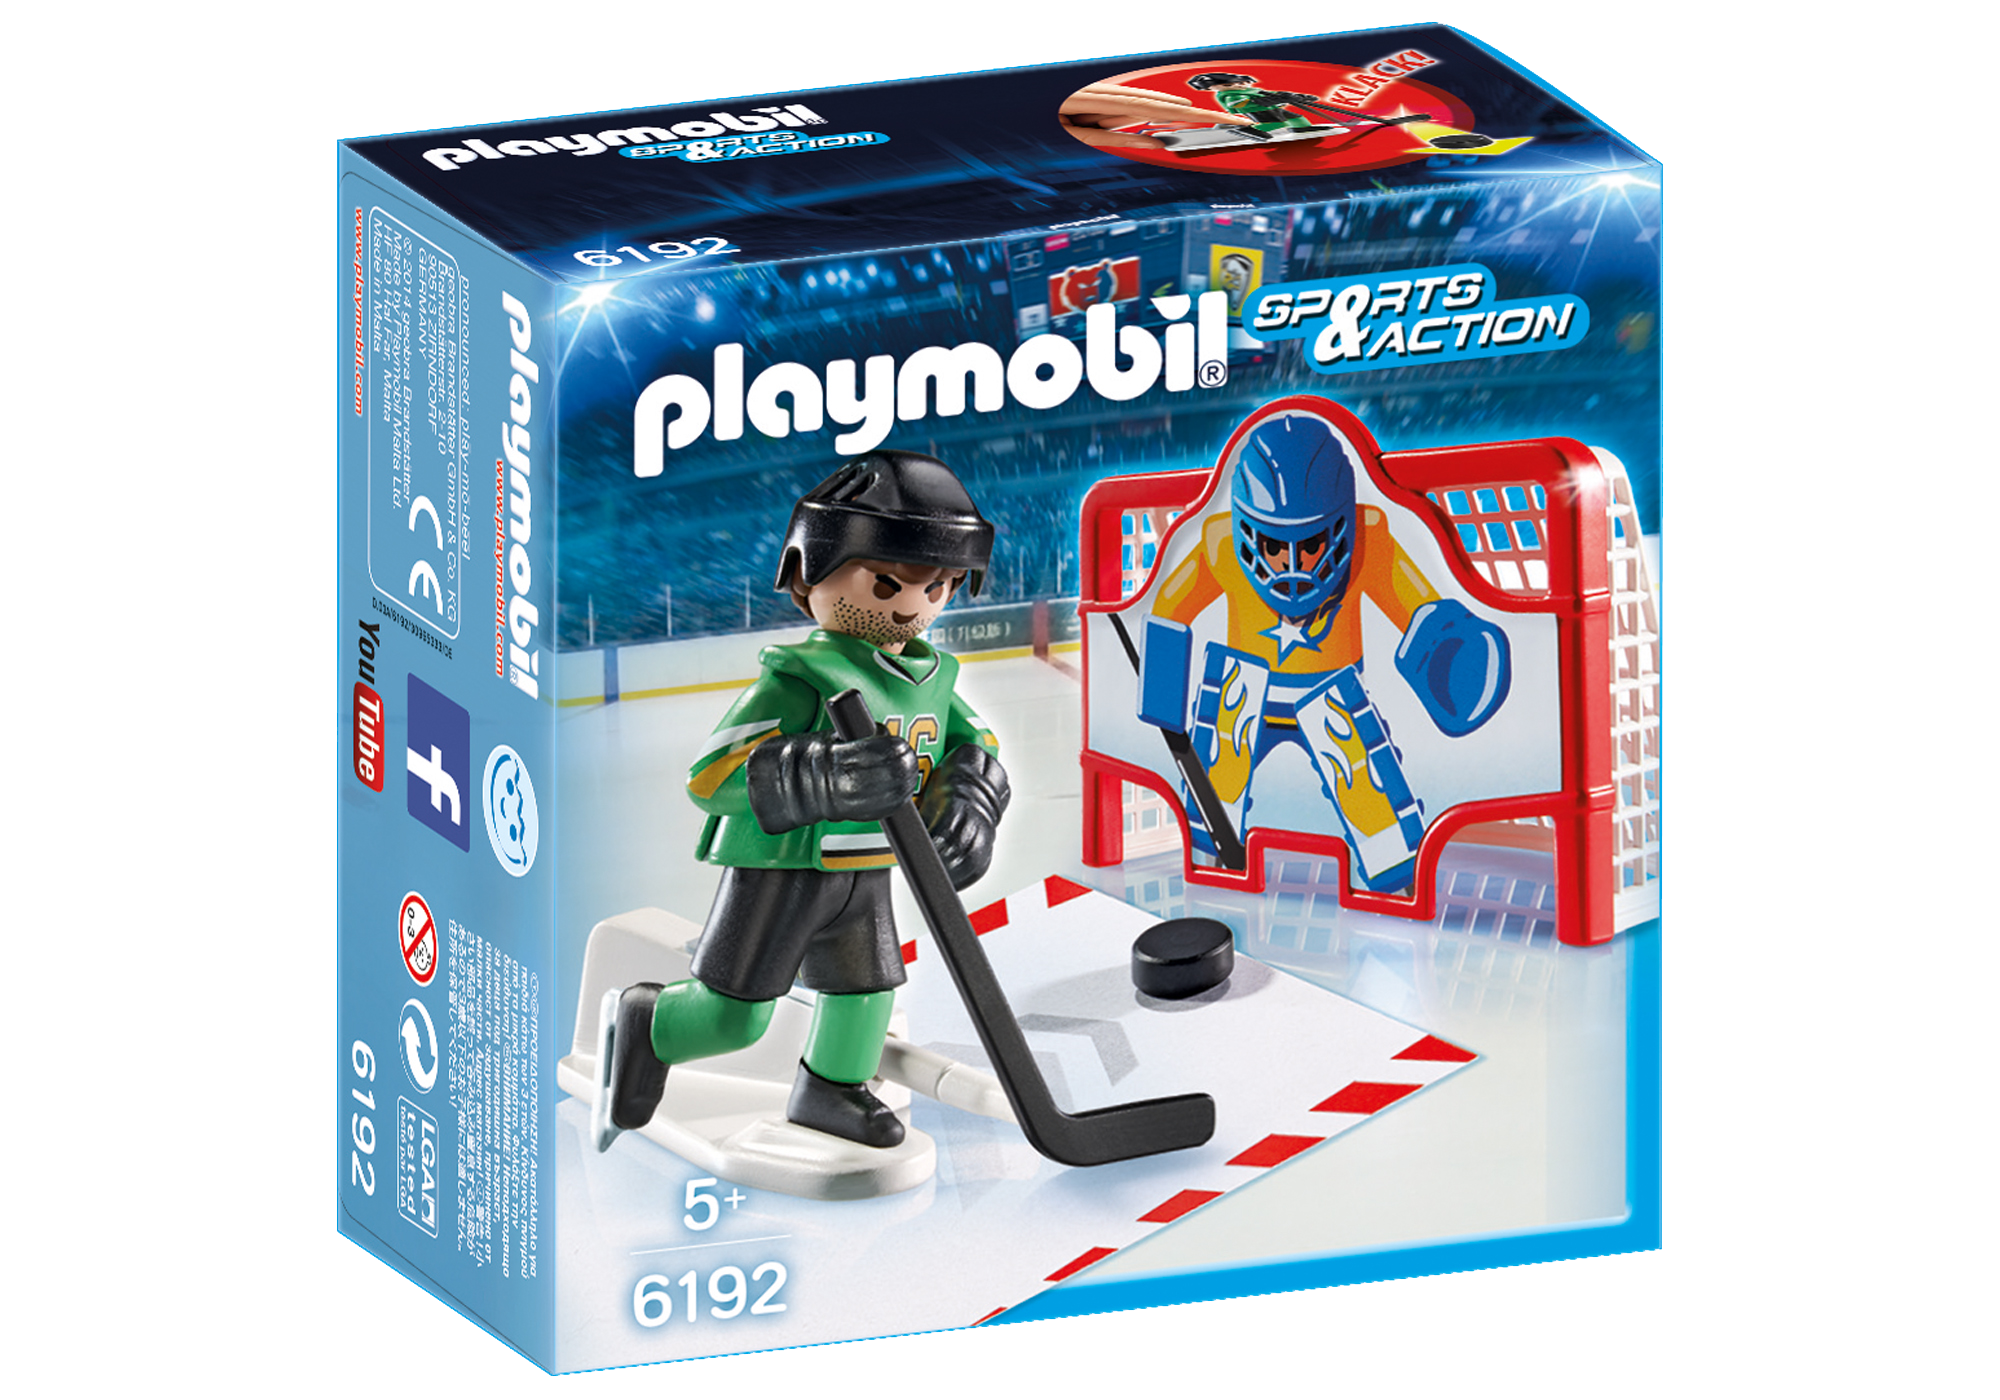 http://media.playmobil.com/i/playmobil/6192_product_box_front